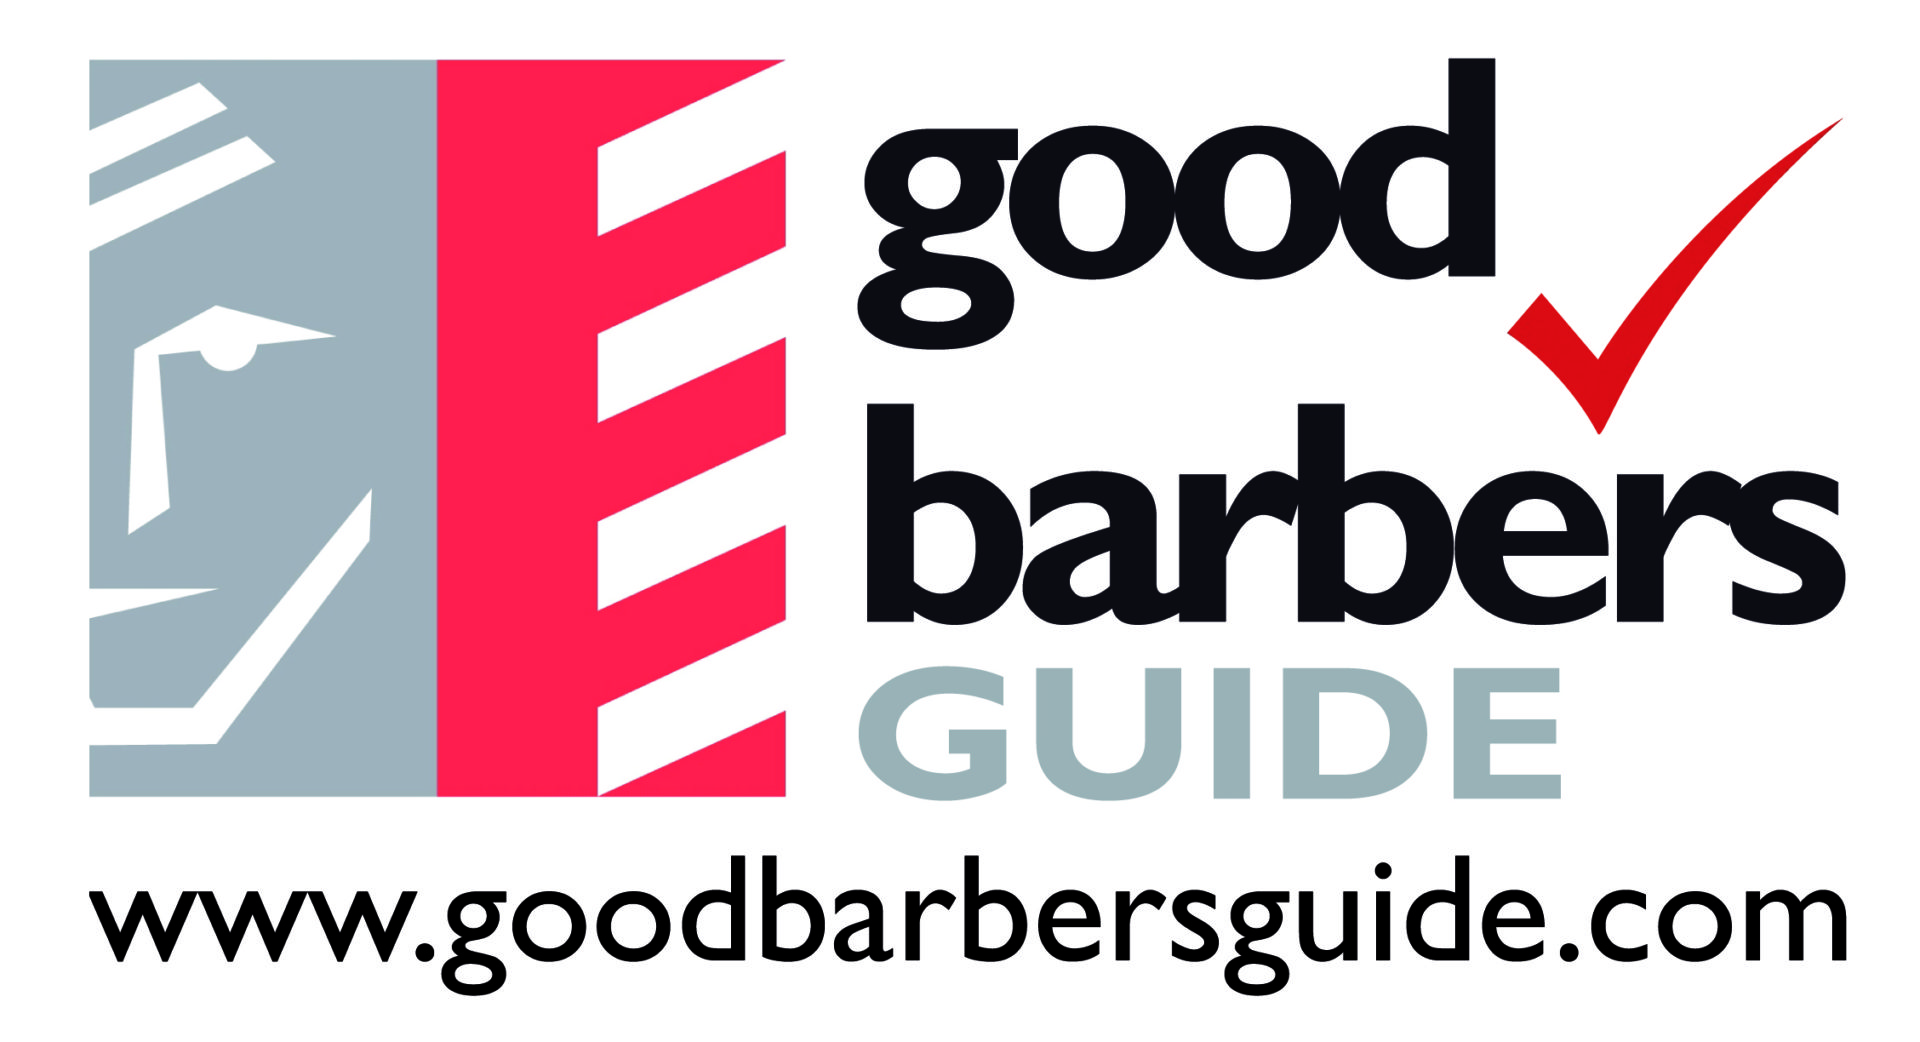 Barber Guide : Good Barbers Guide logo large